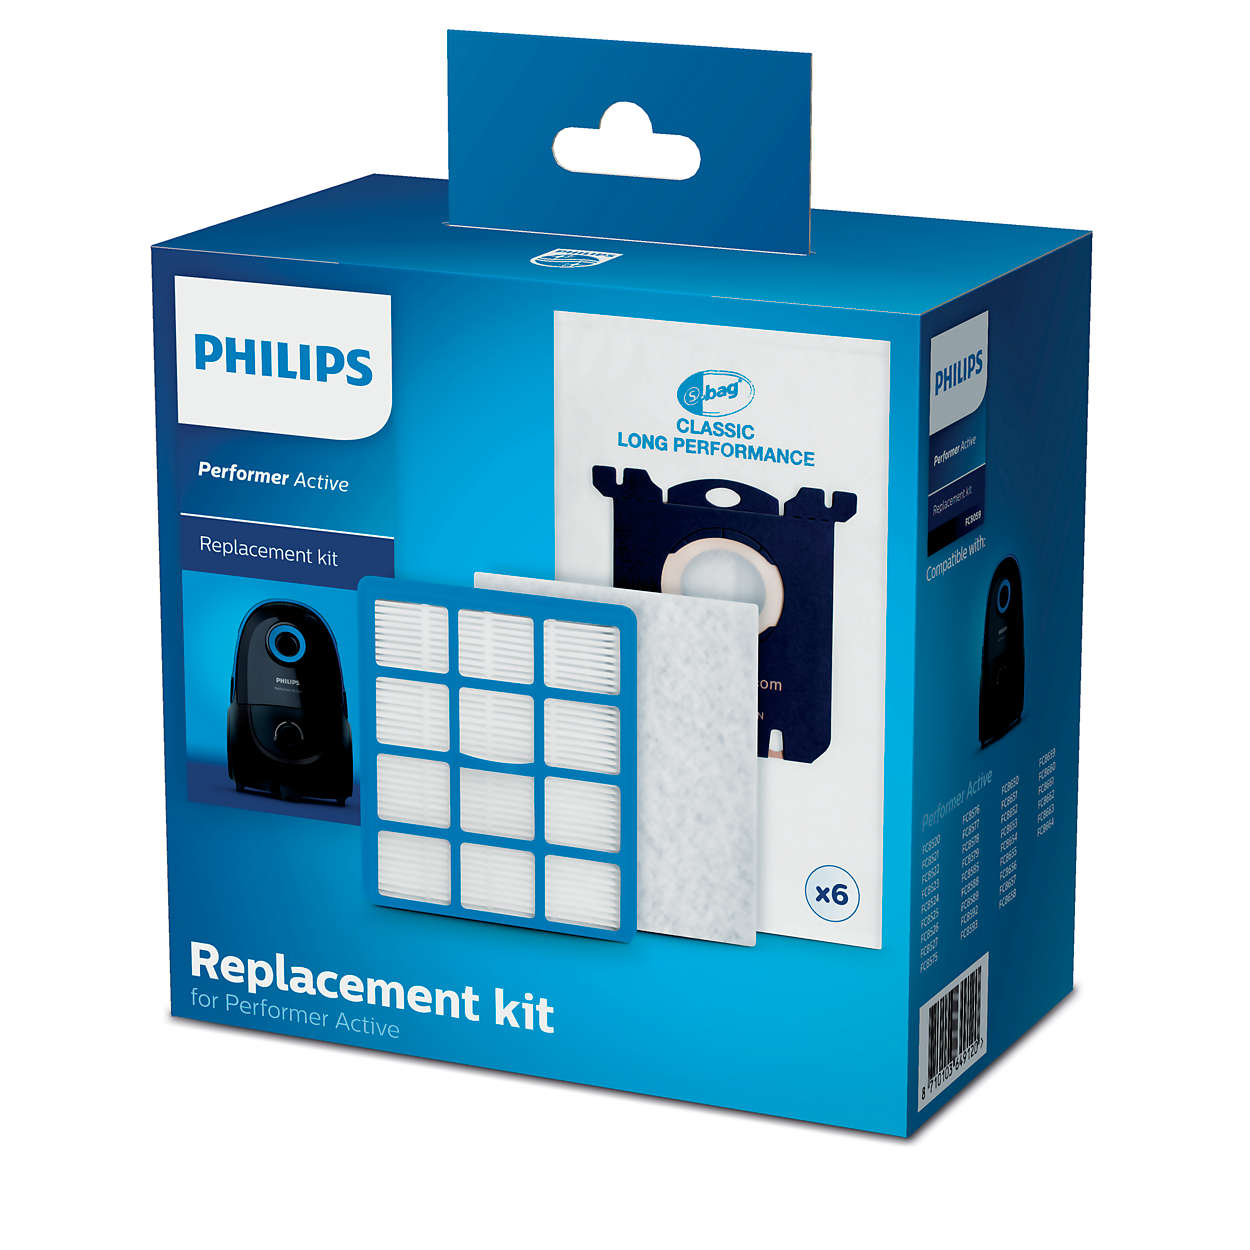 Kit de rechange pour Performer Active